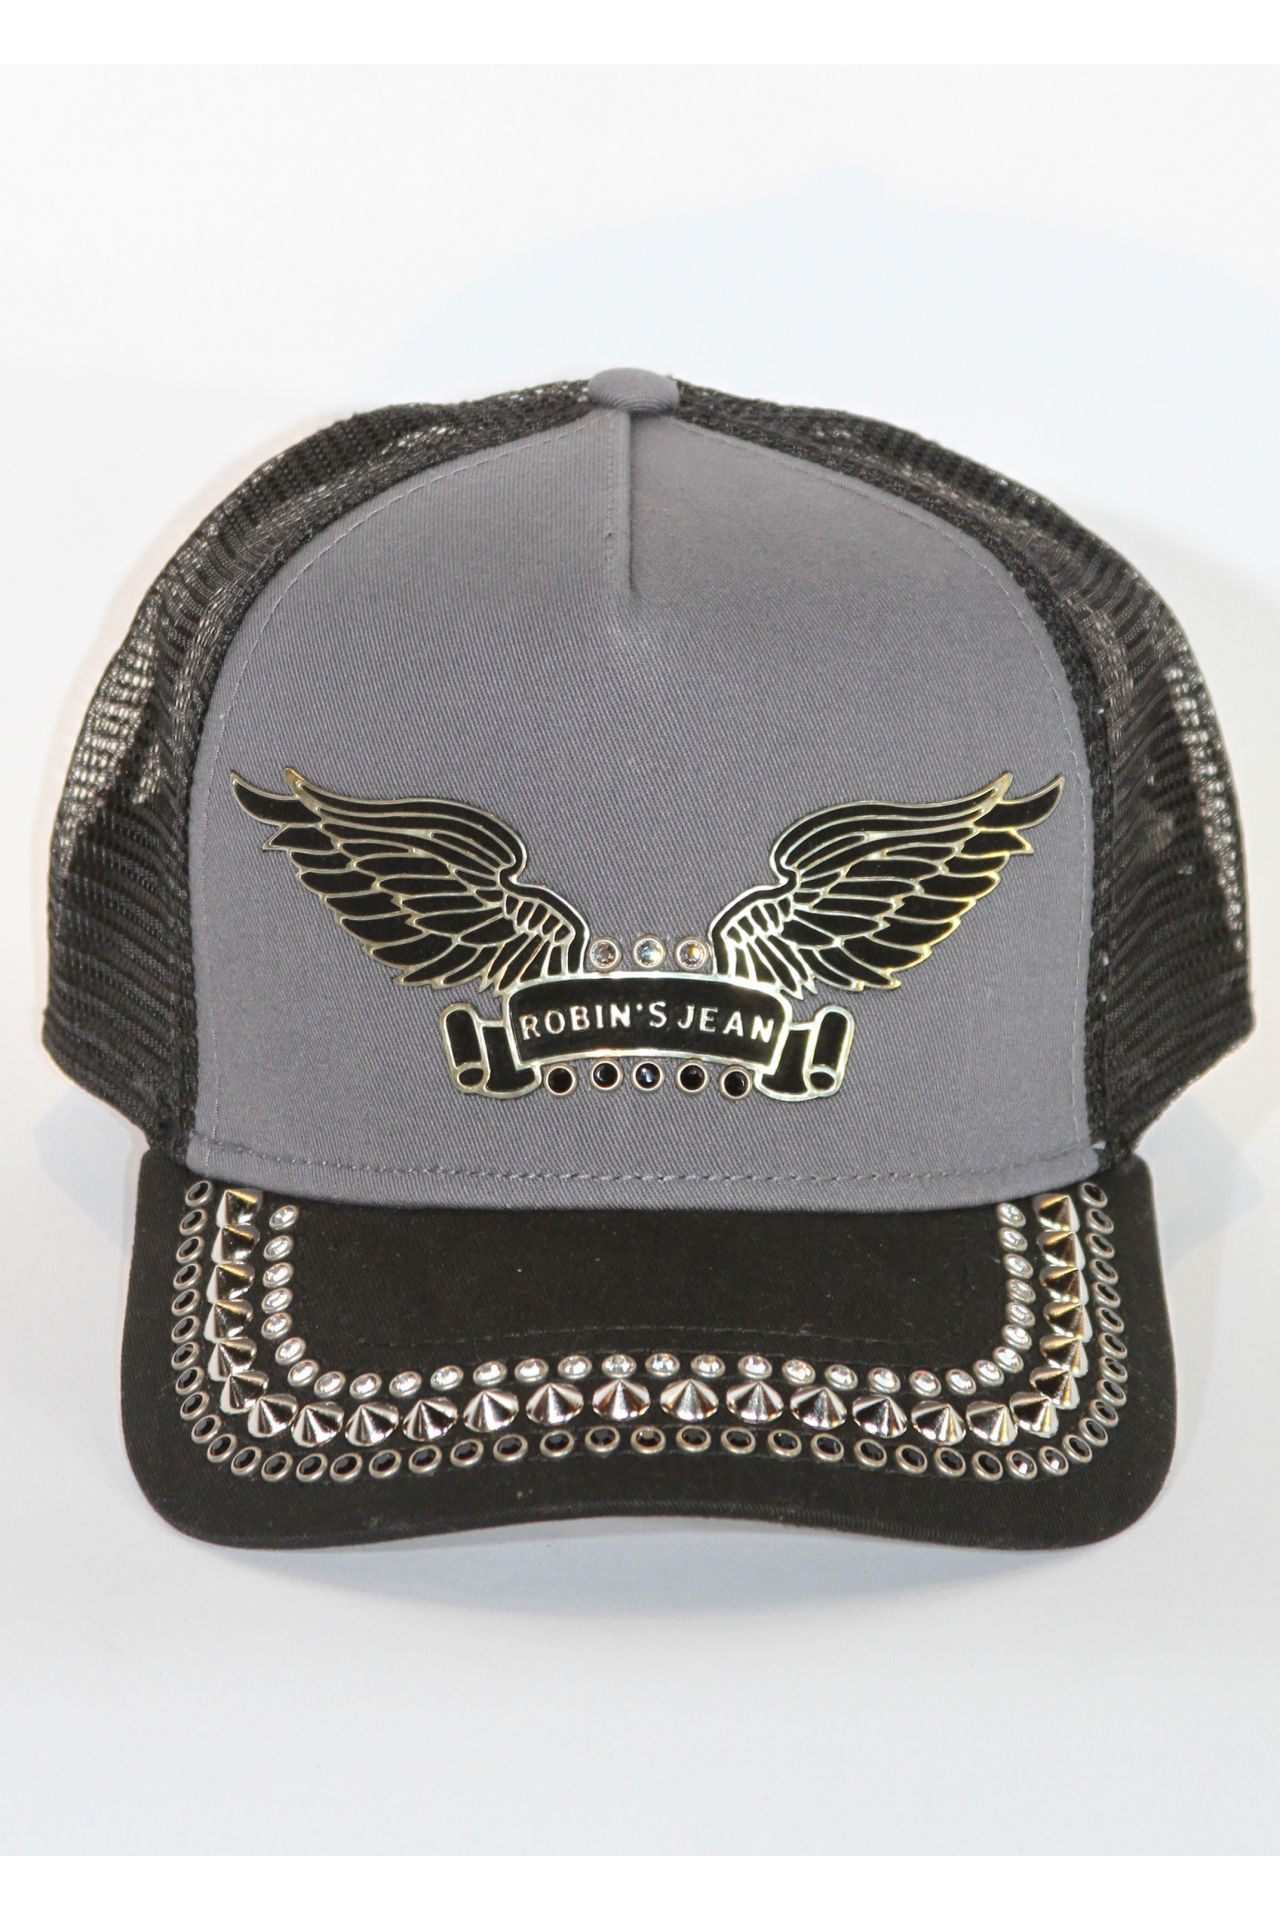 TRUCKER CAP IN CHARCOAL WITH JET BLACK NICKLE SPIKES